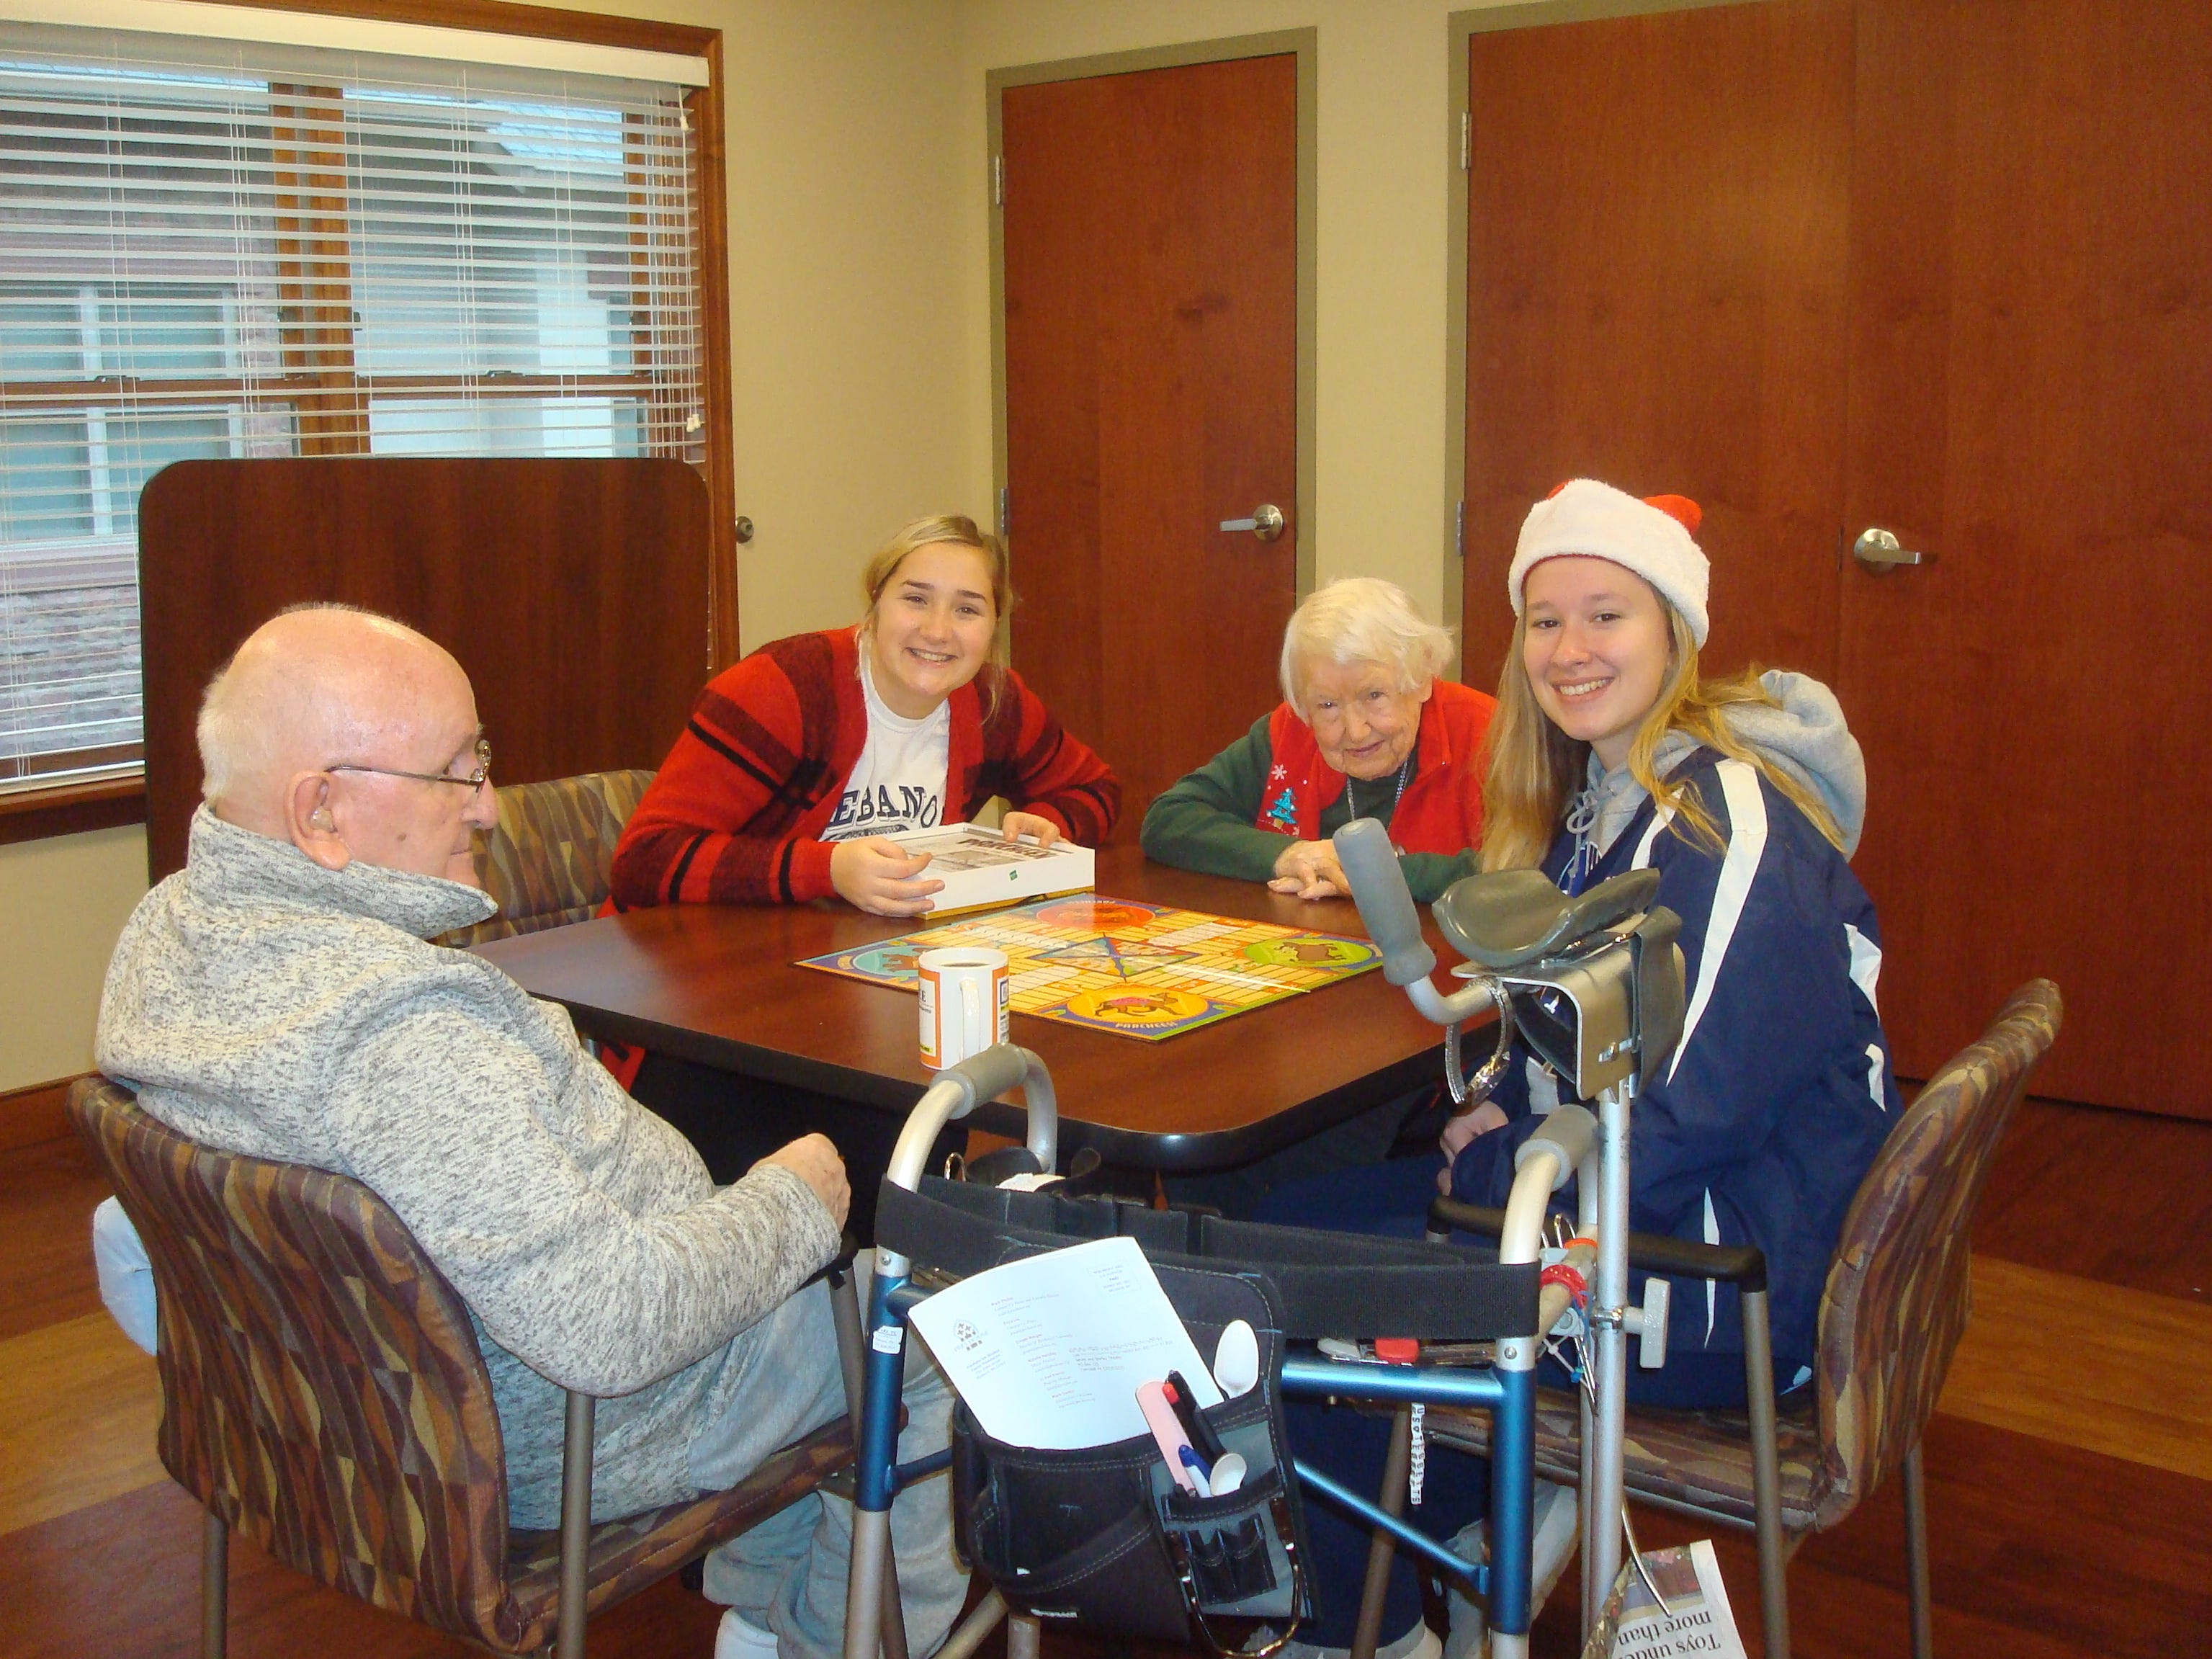 The Lebanon Catholic girls basketball team enjoyed a holiday visit at Cornwall Manor recently.